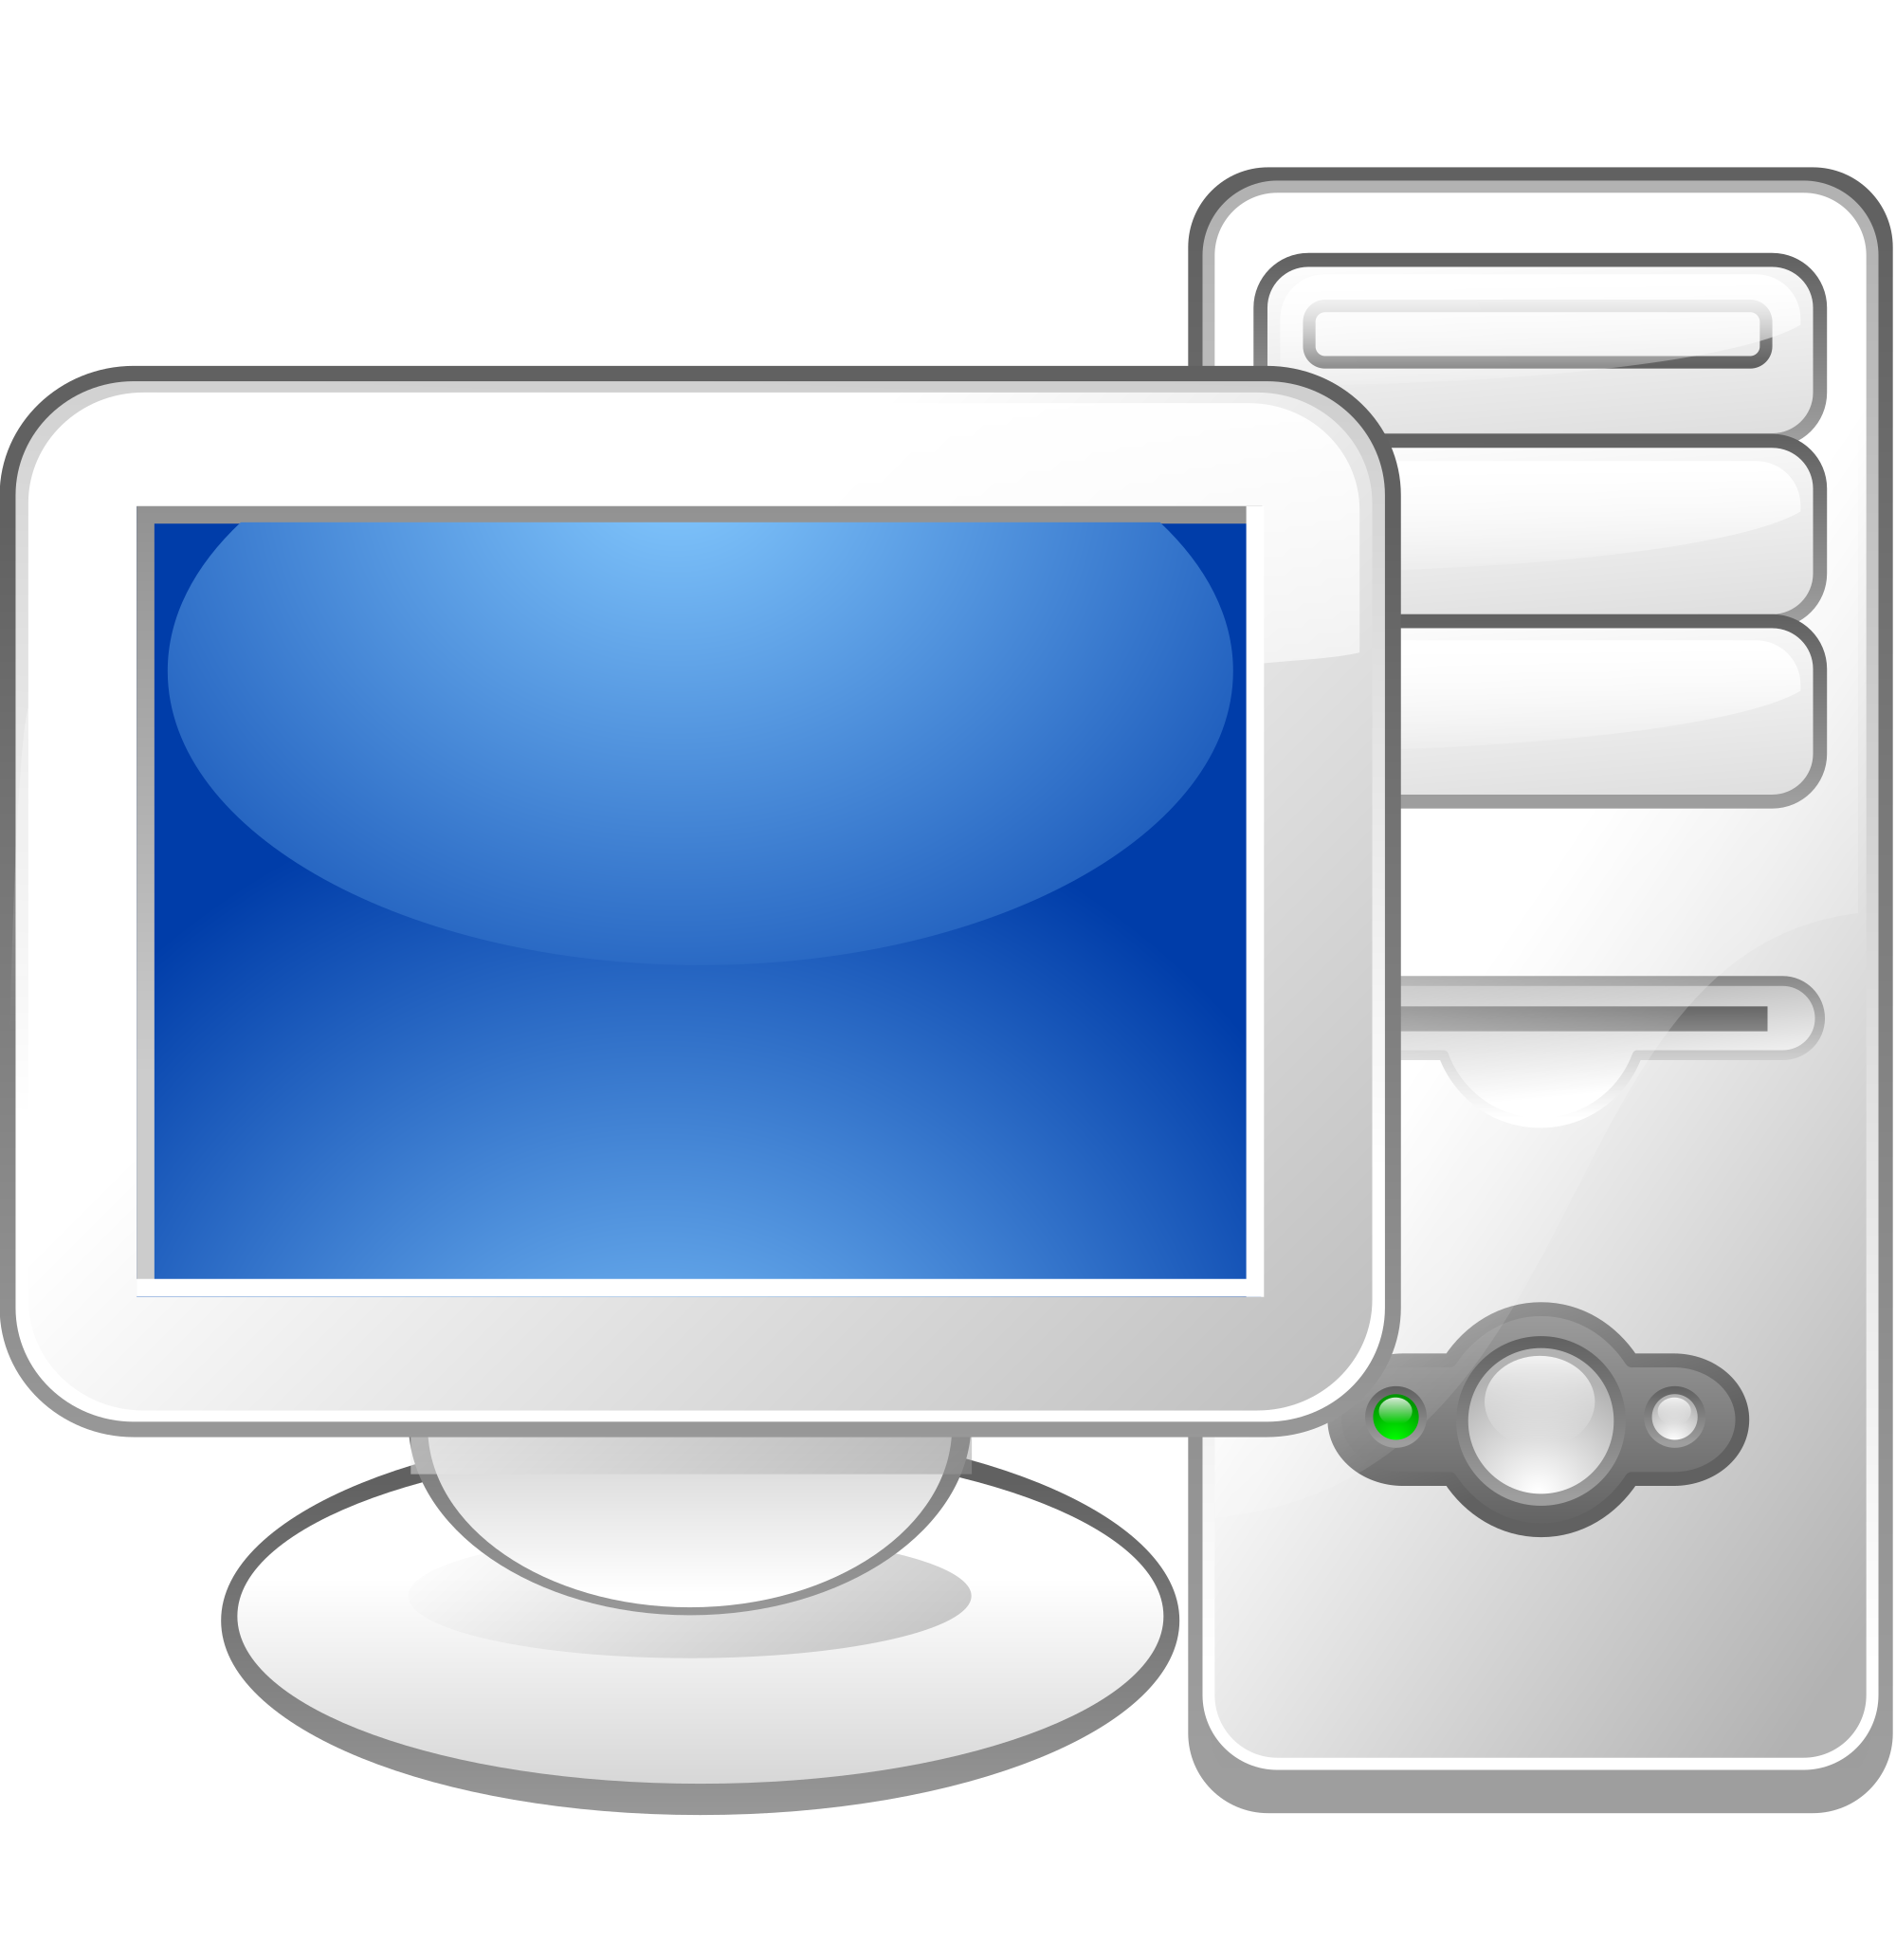 png transparent library Computer svg. File n screen wikimedia